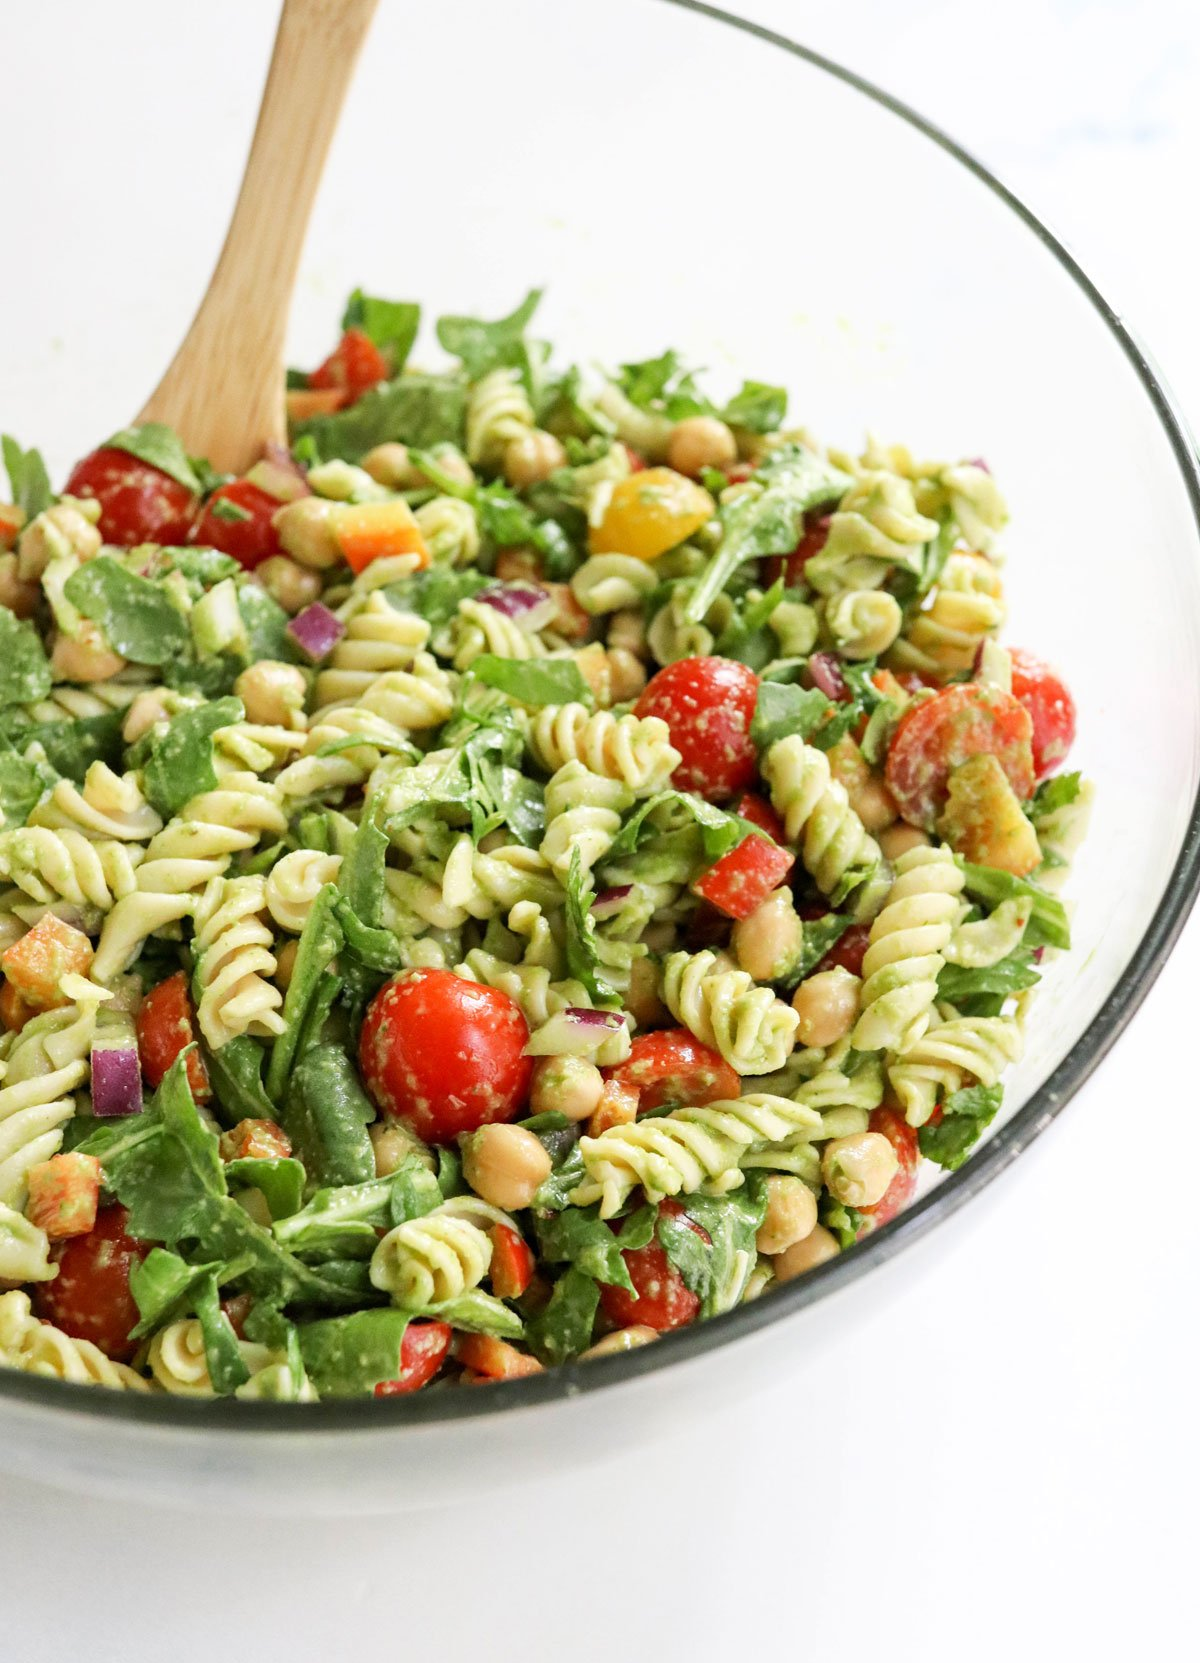 pesto pasta salad mixed together in large bowl